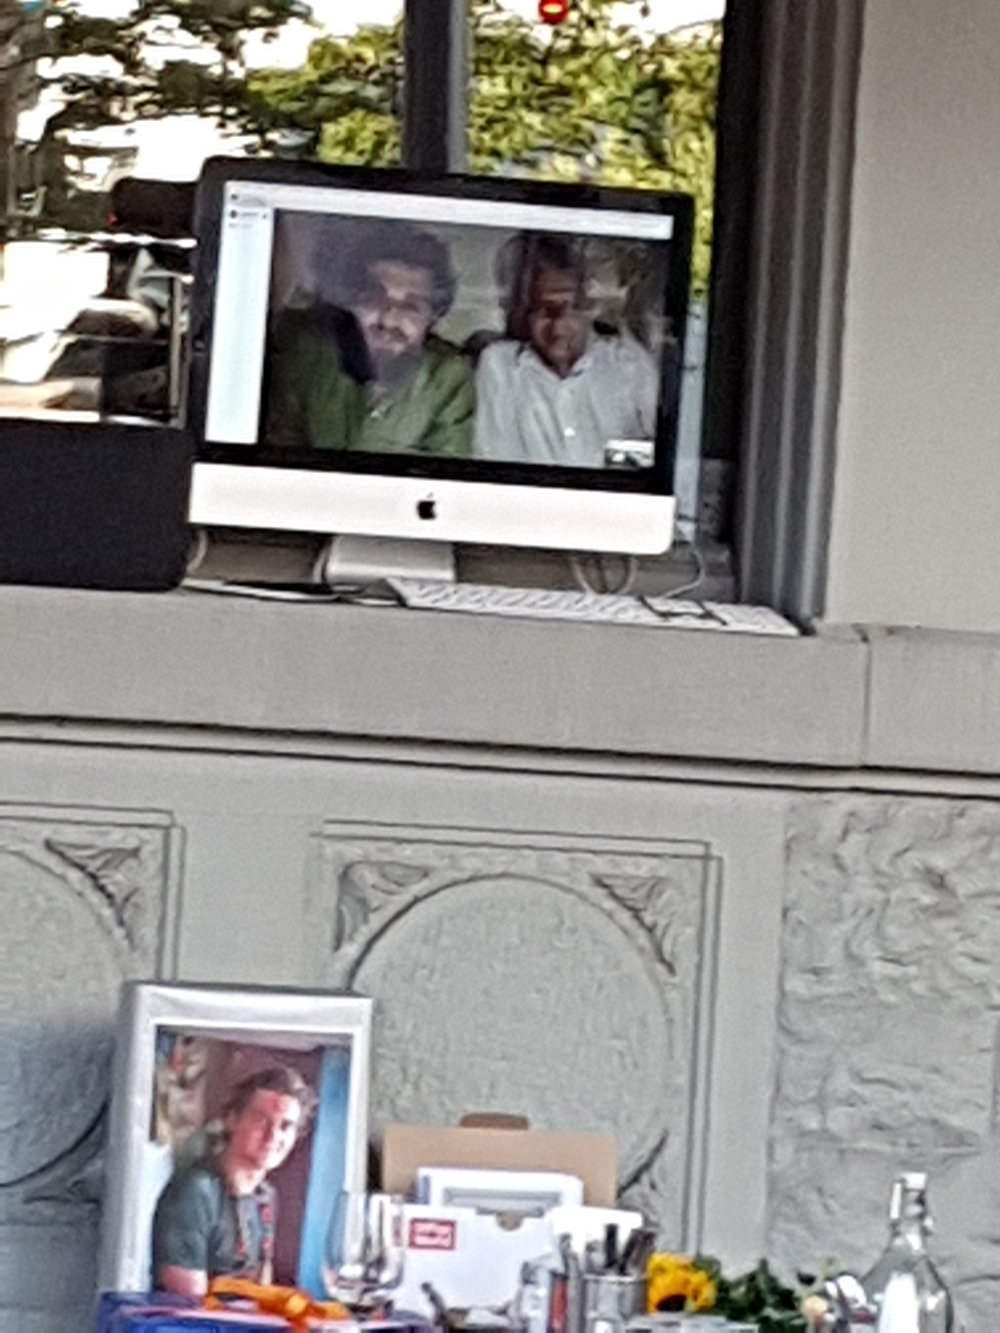 Our live link to Govinda and Lukas in Nepal was one of the highlights of the evening.